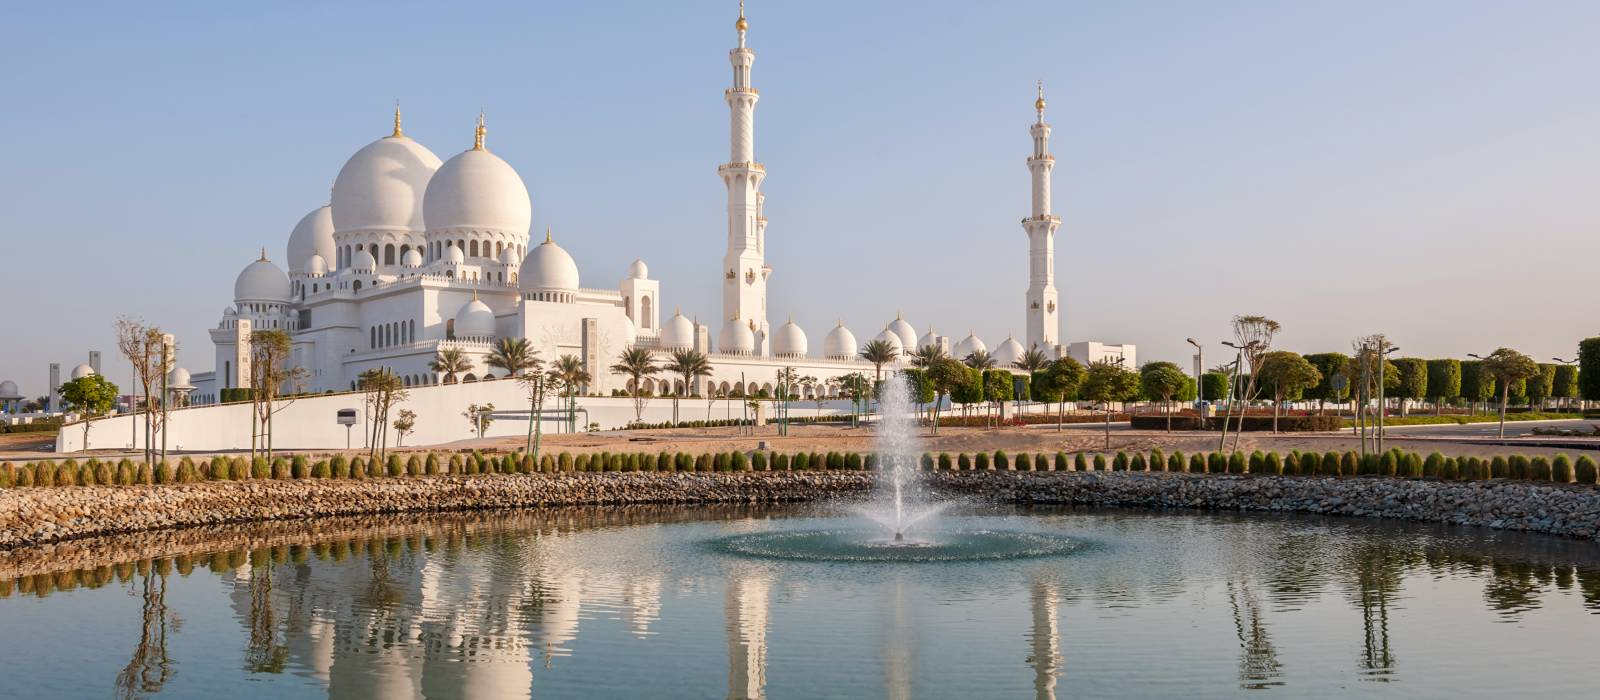 Sheikh Zayed Mosque in Middle East United Arab Emirates with reflection on water. Abu Dhabi